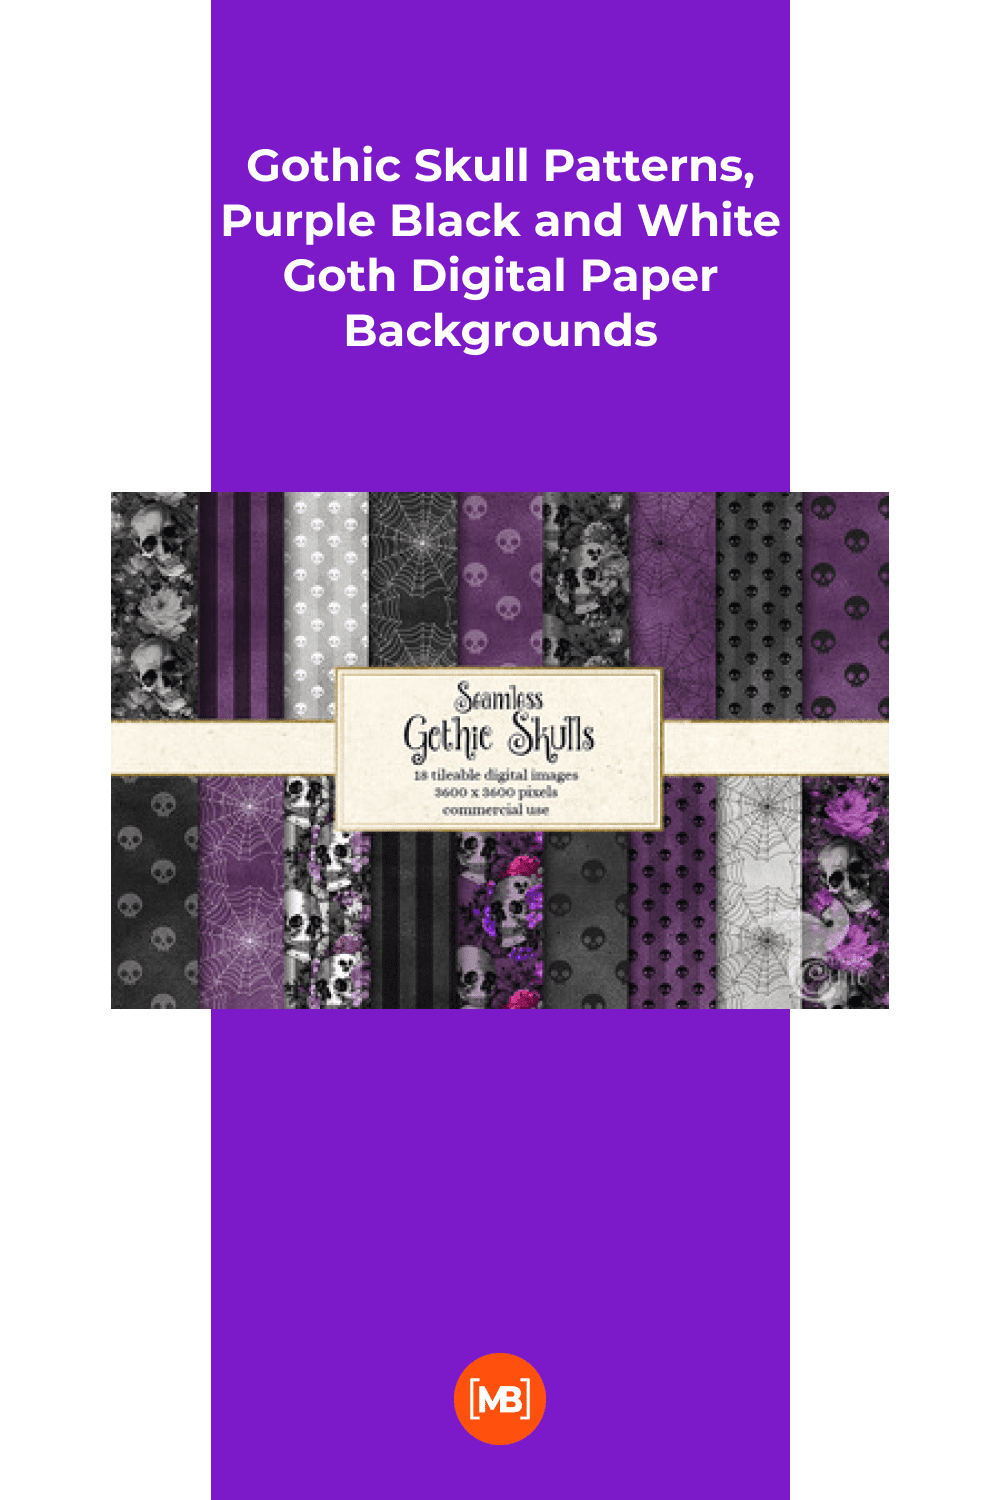 Gothic skull patterns, purple black and white goth digital paper backgrounds.